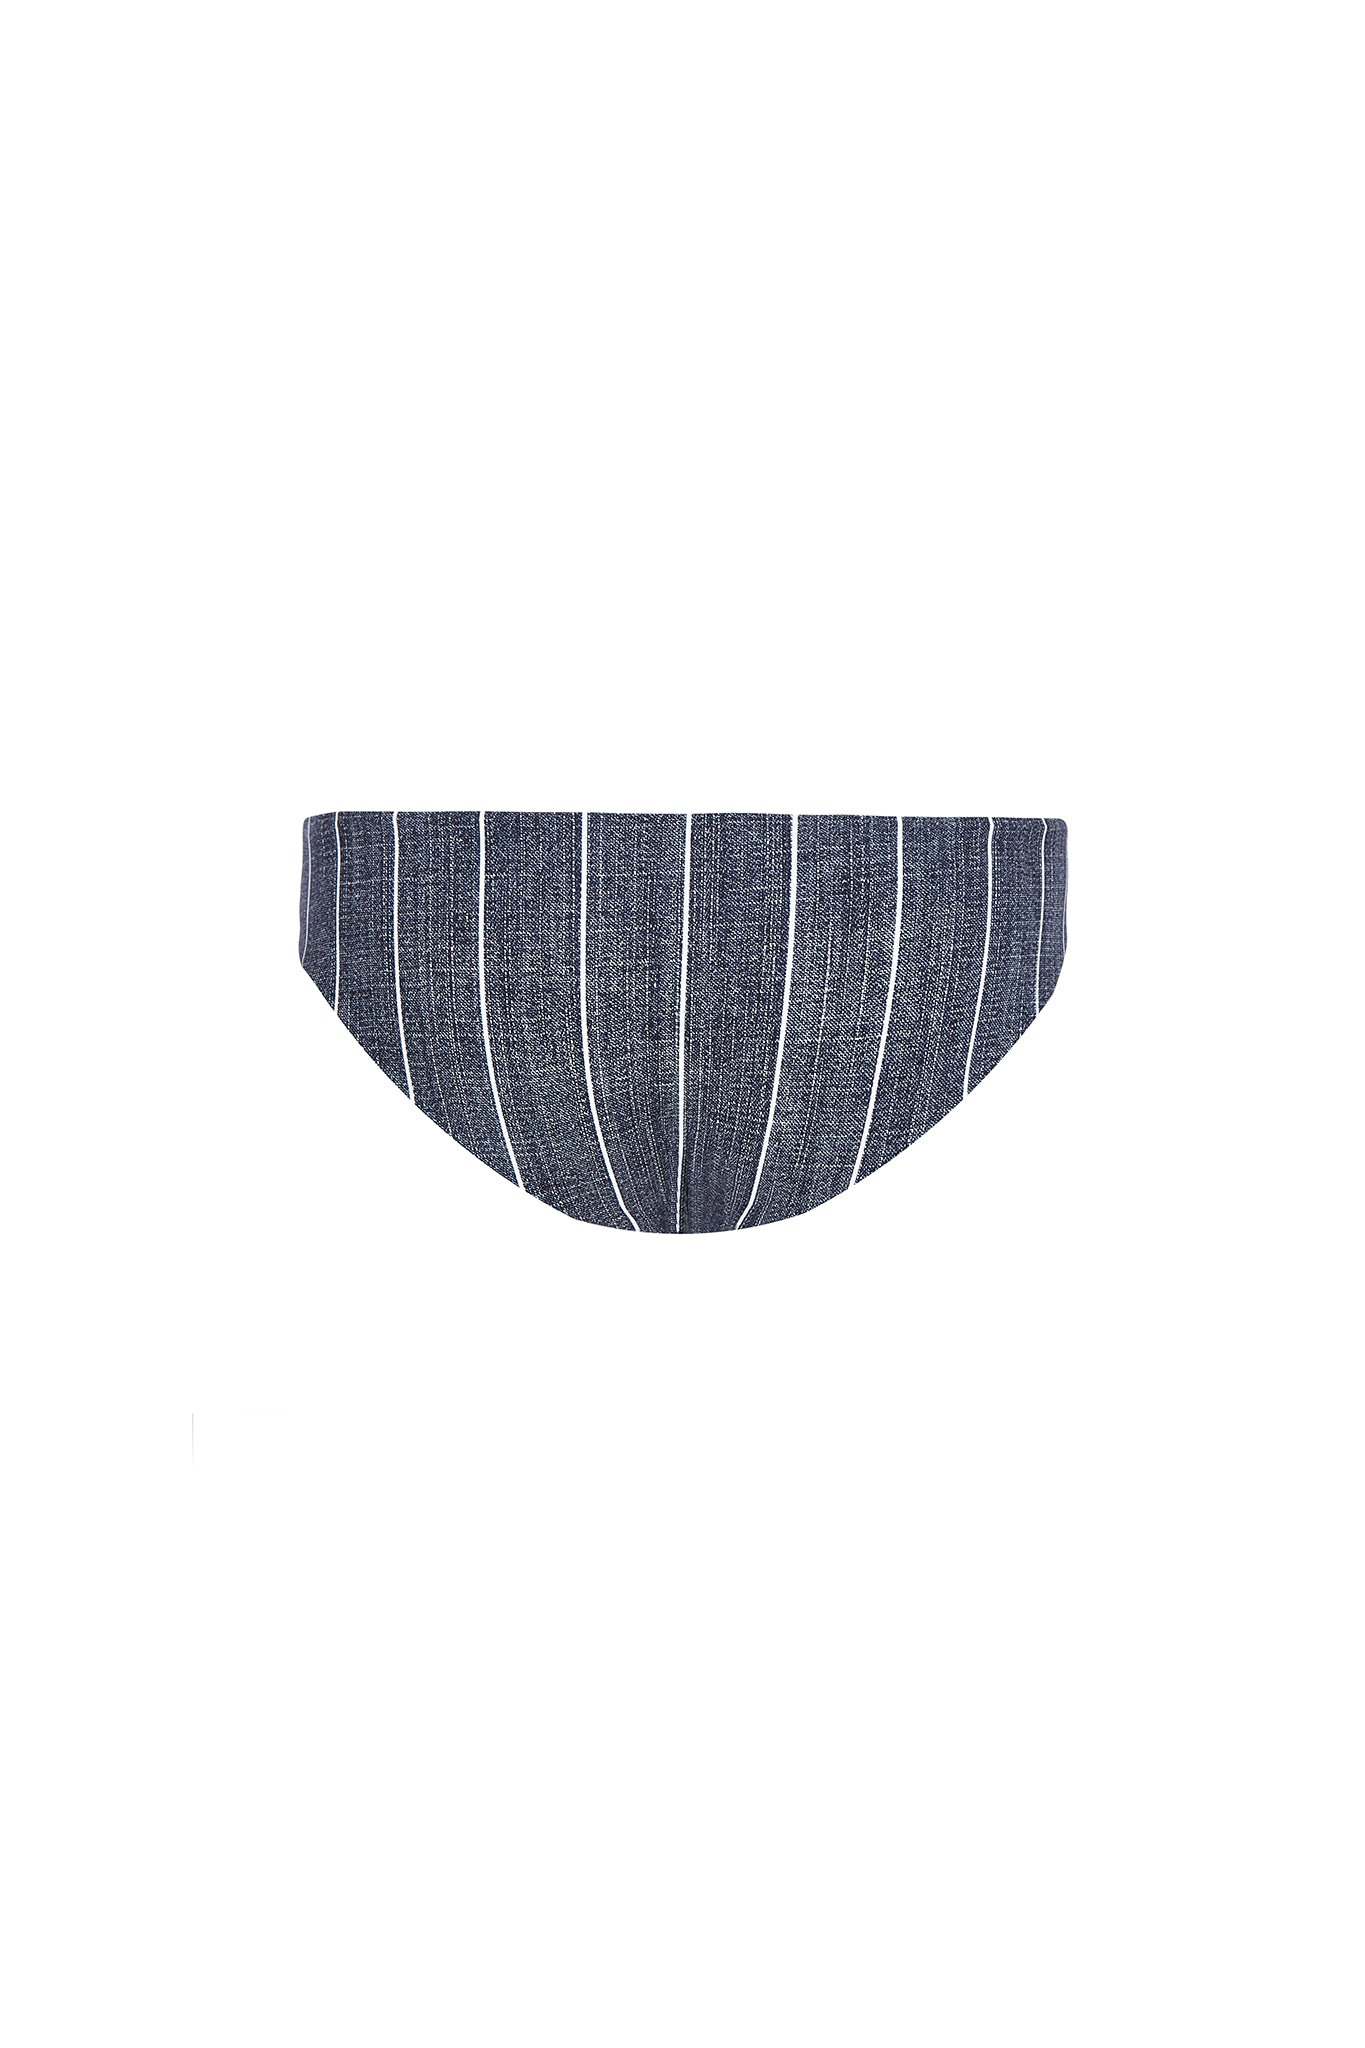 Bradley basic swim bottom in grey pin stripe product shot back